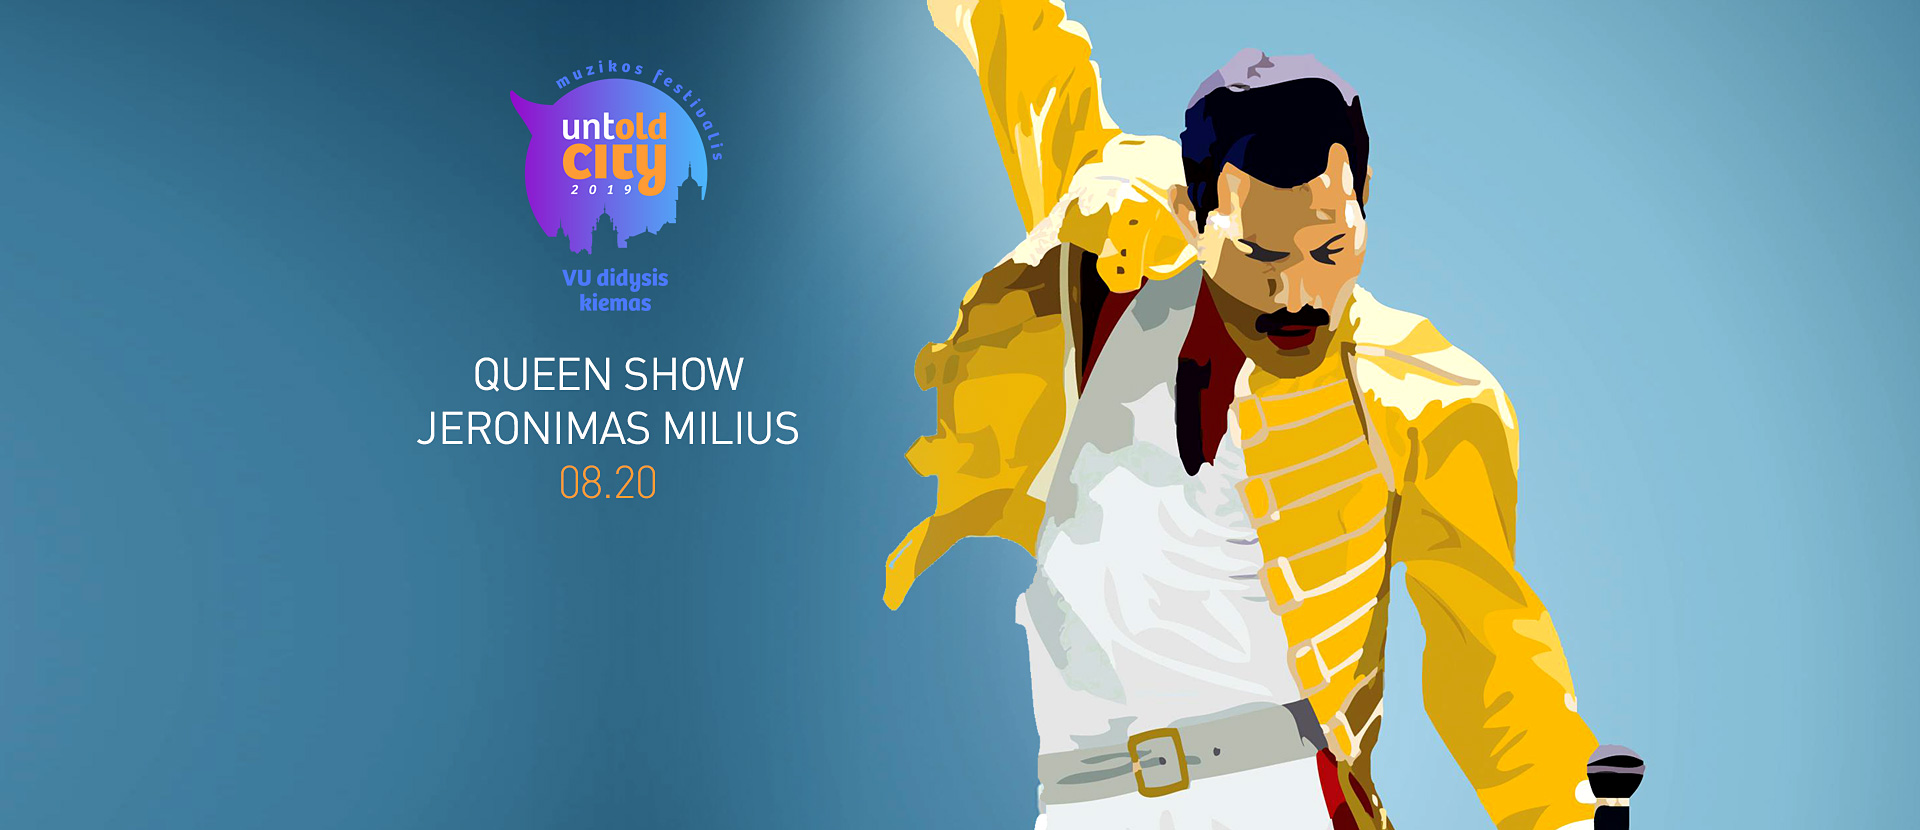 Queen Show. Jeronimas Milius | UNTOLD CITY